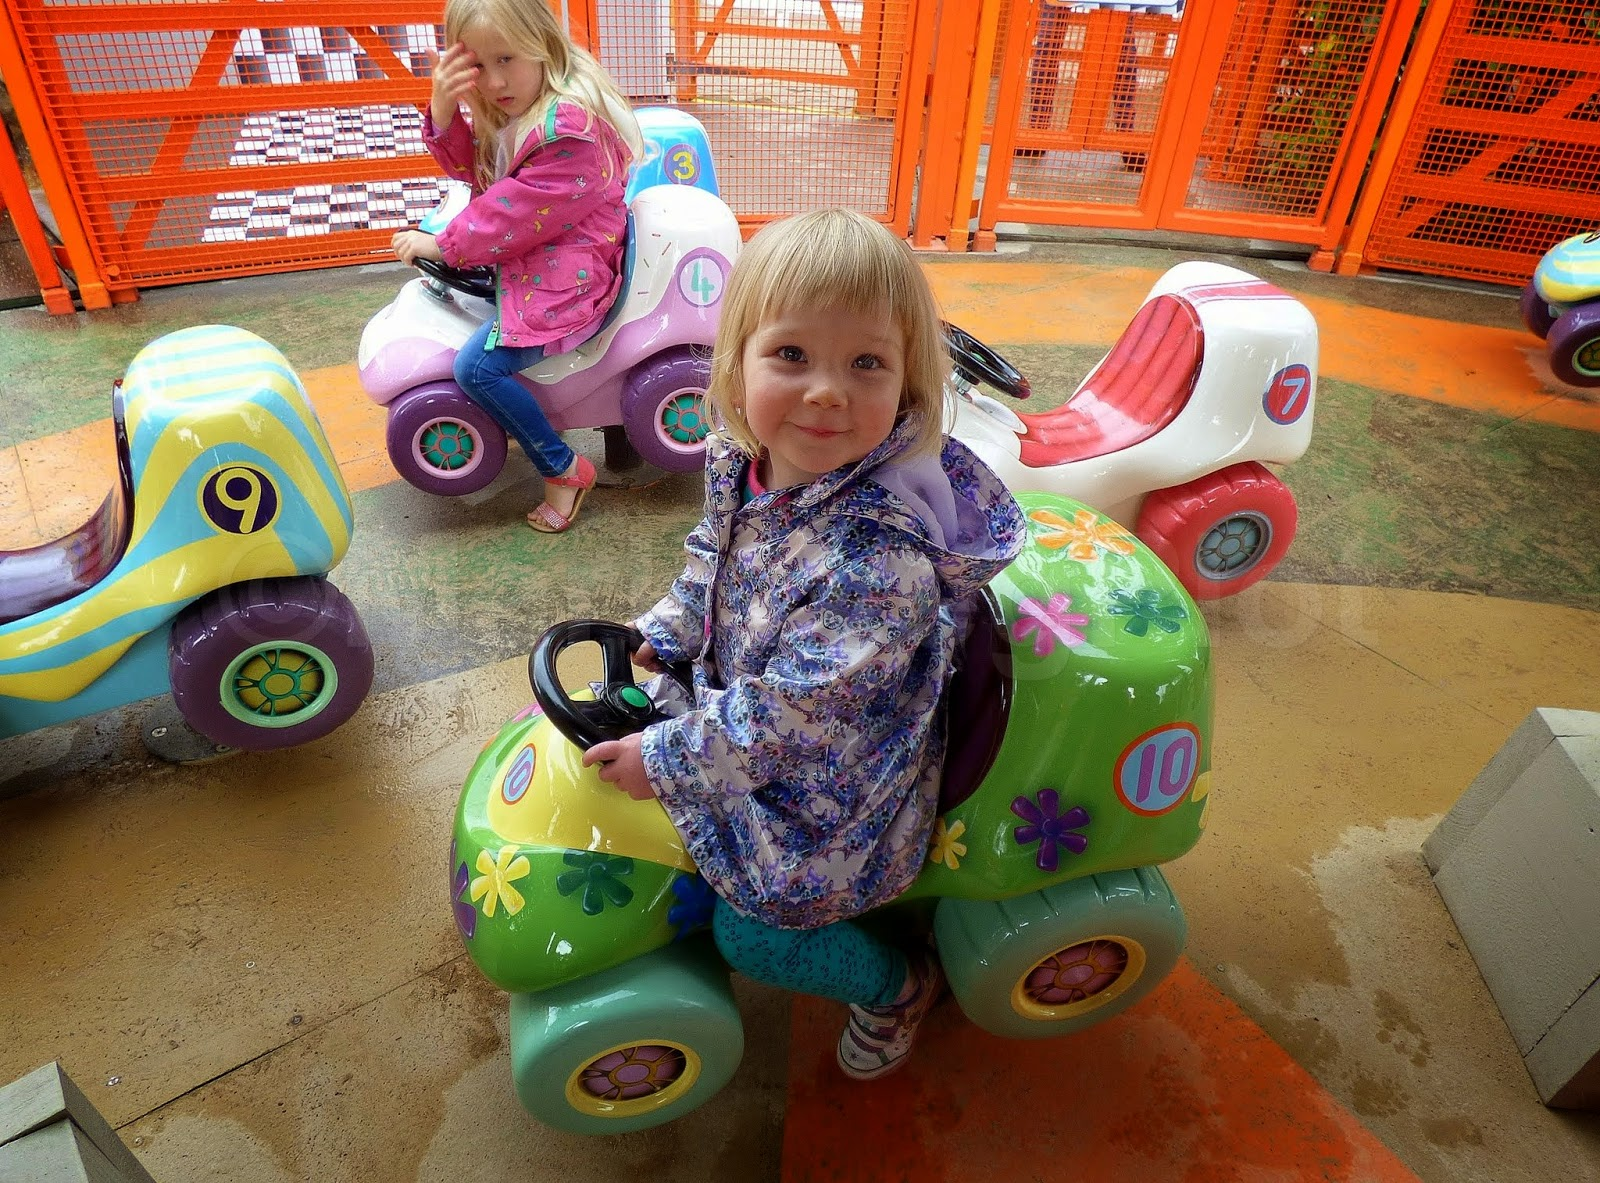 Numtums ride at CBeebies Land